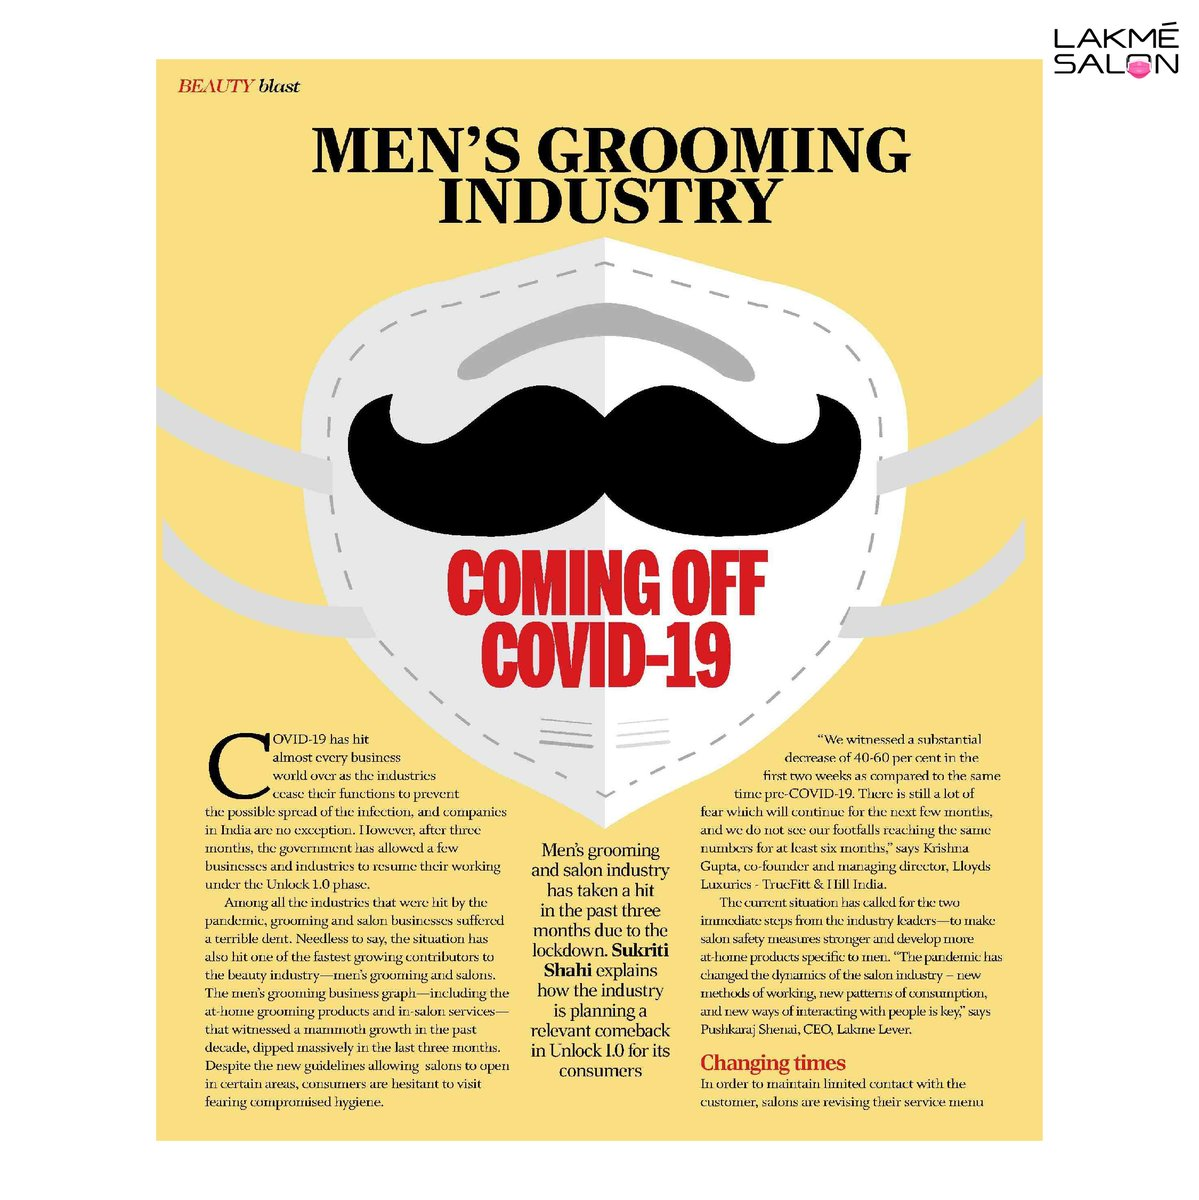 Lakmé Lever discusses the new dynamics of the salon industry and how Lakmé Salon is following strict social distancing measures, pre-screening every individual, and providing their experts with protective gear as per the new strict safety and hygiene protocols. https://t.co/XMJWv2NLKb